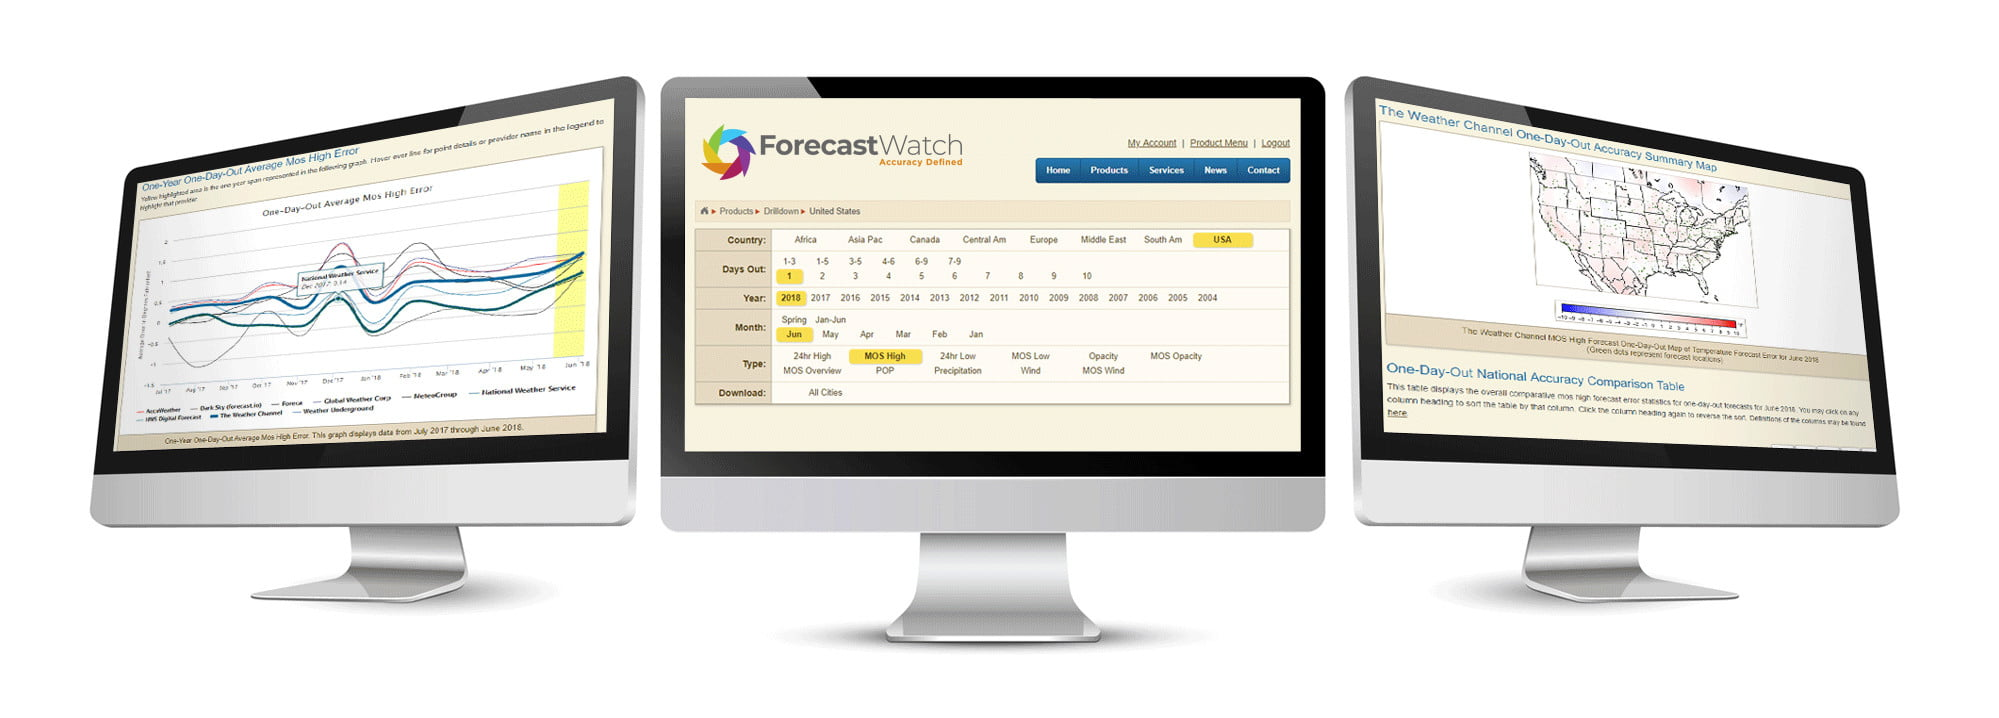 Can You Trust Your Weather App Based on Its Forecast Data?   Digital